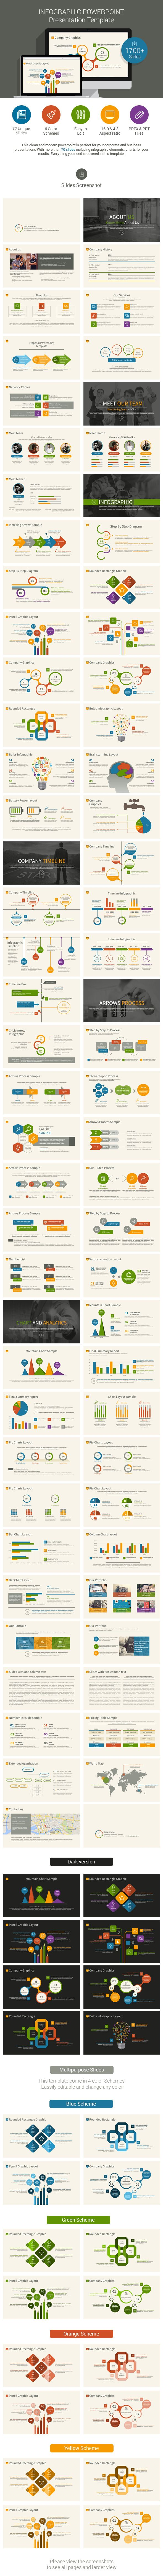 Infographic Powerpoint Template PowerPoint Template / Theme / Presentation / Slides / Background / Power Point #powerpoint #template #theme